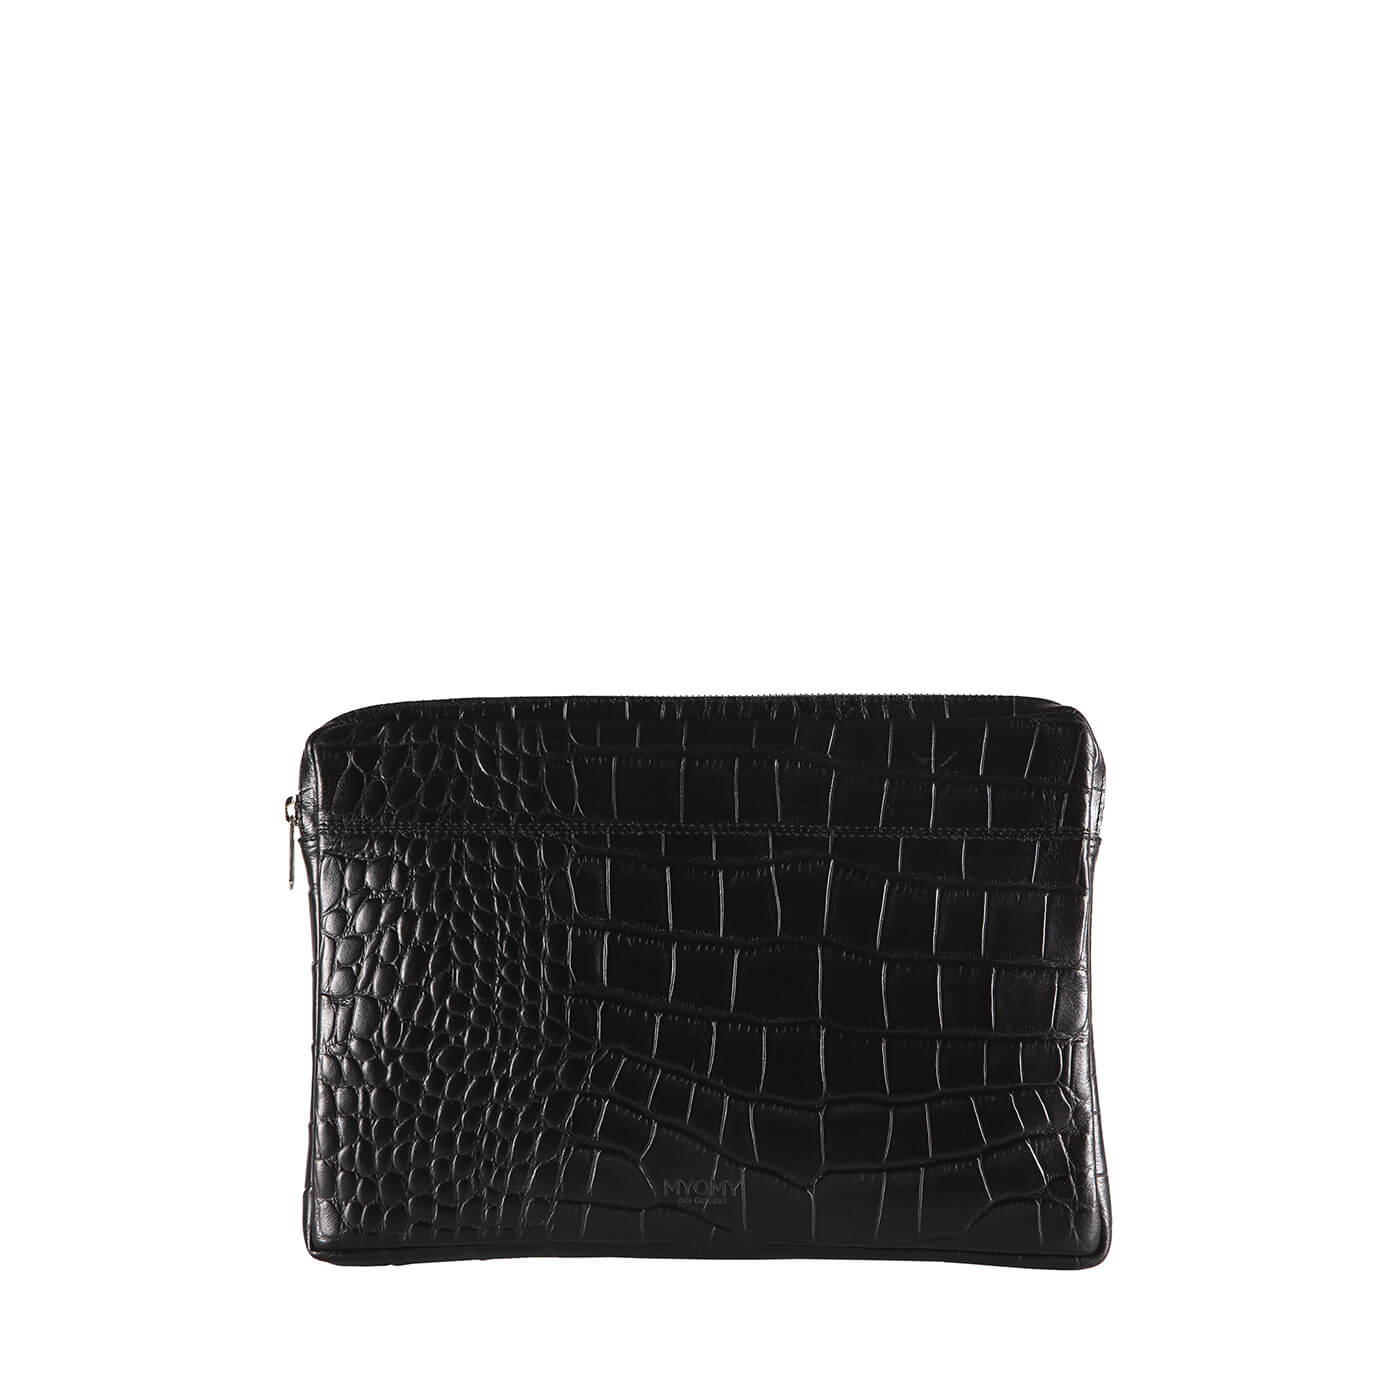 MY PHILIP BAG Laptop Sleeve 13 inch - croco black